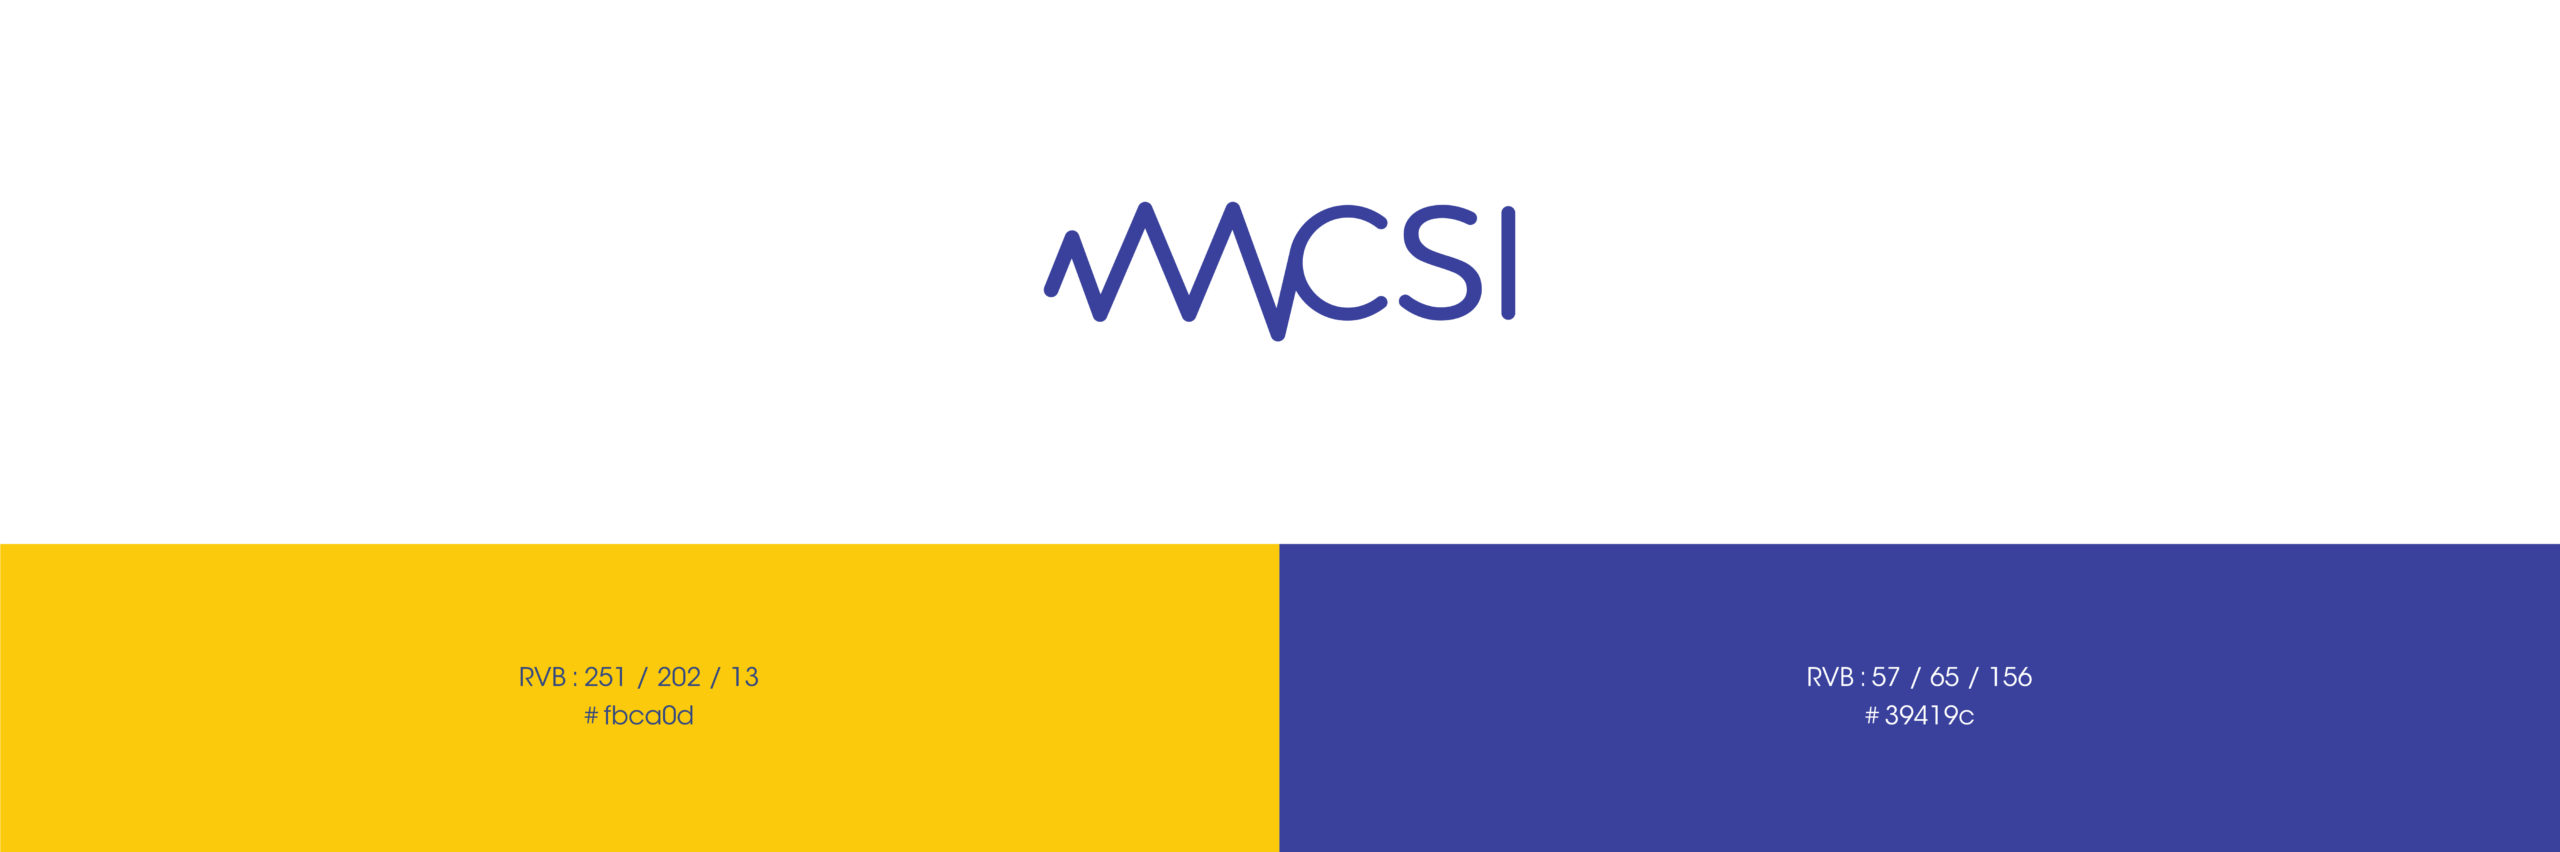 mcsi_couleurs1-scaled MCSI